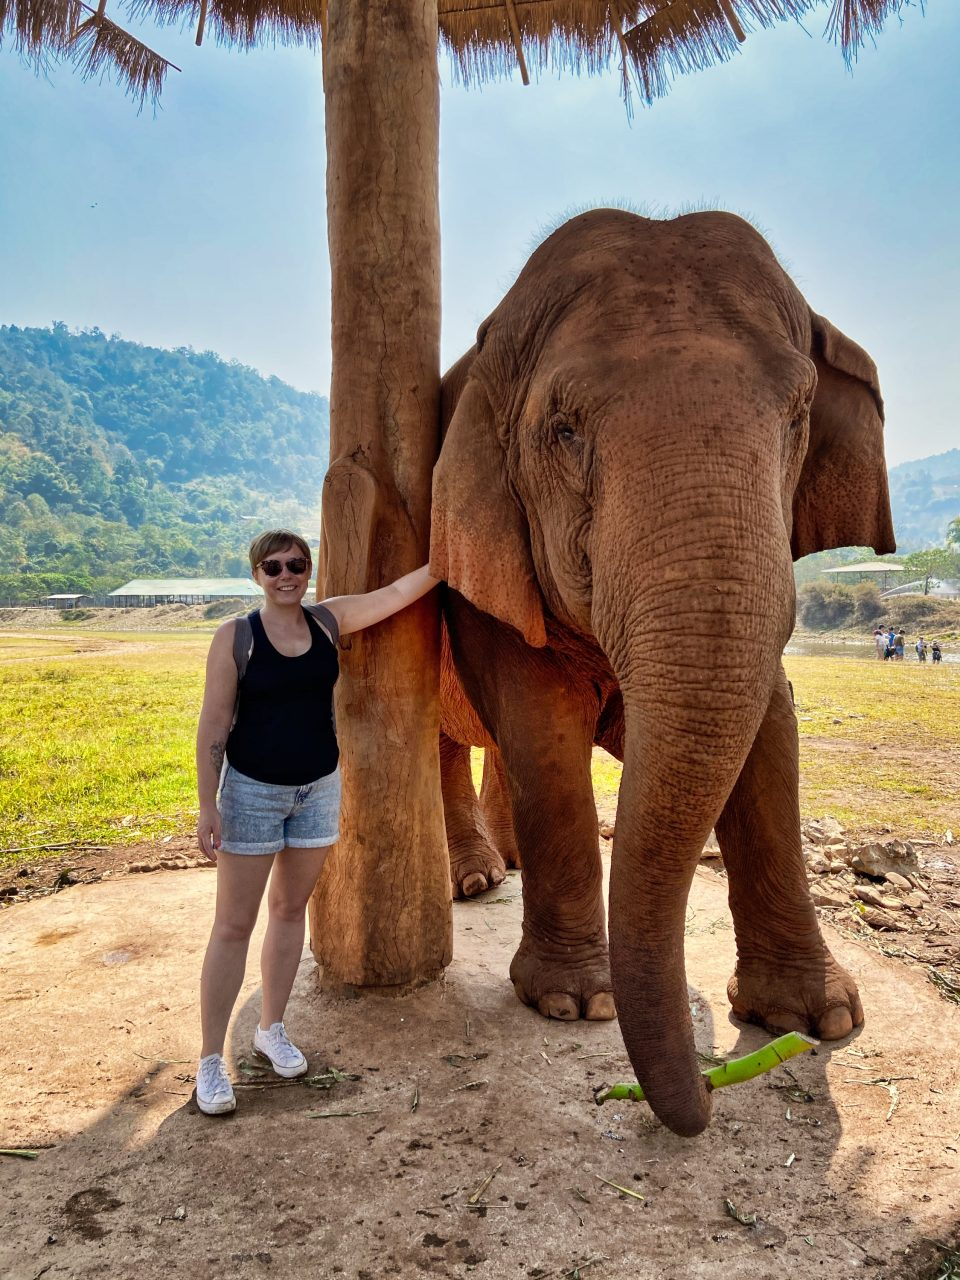 a girl standing next to an elephant at elephant nature park